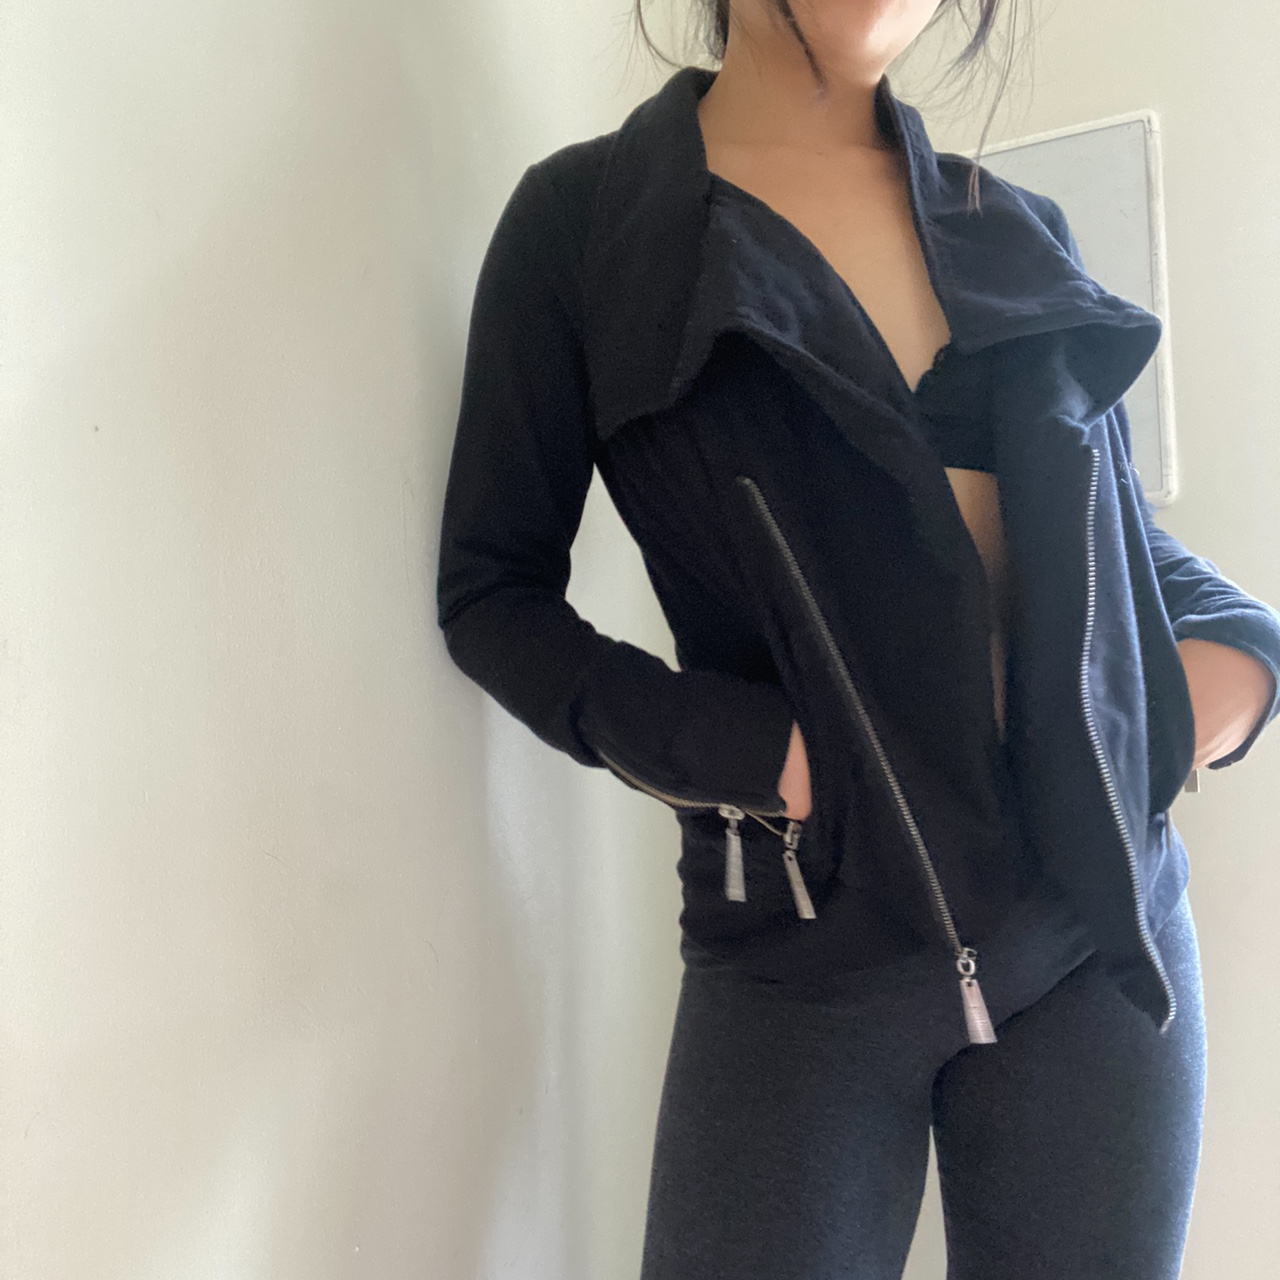 Product Image 1 - Black zipper jacket Material is super